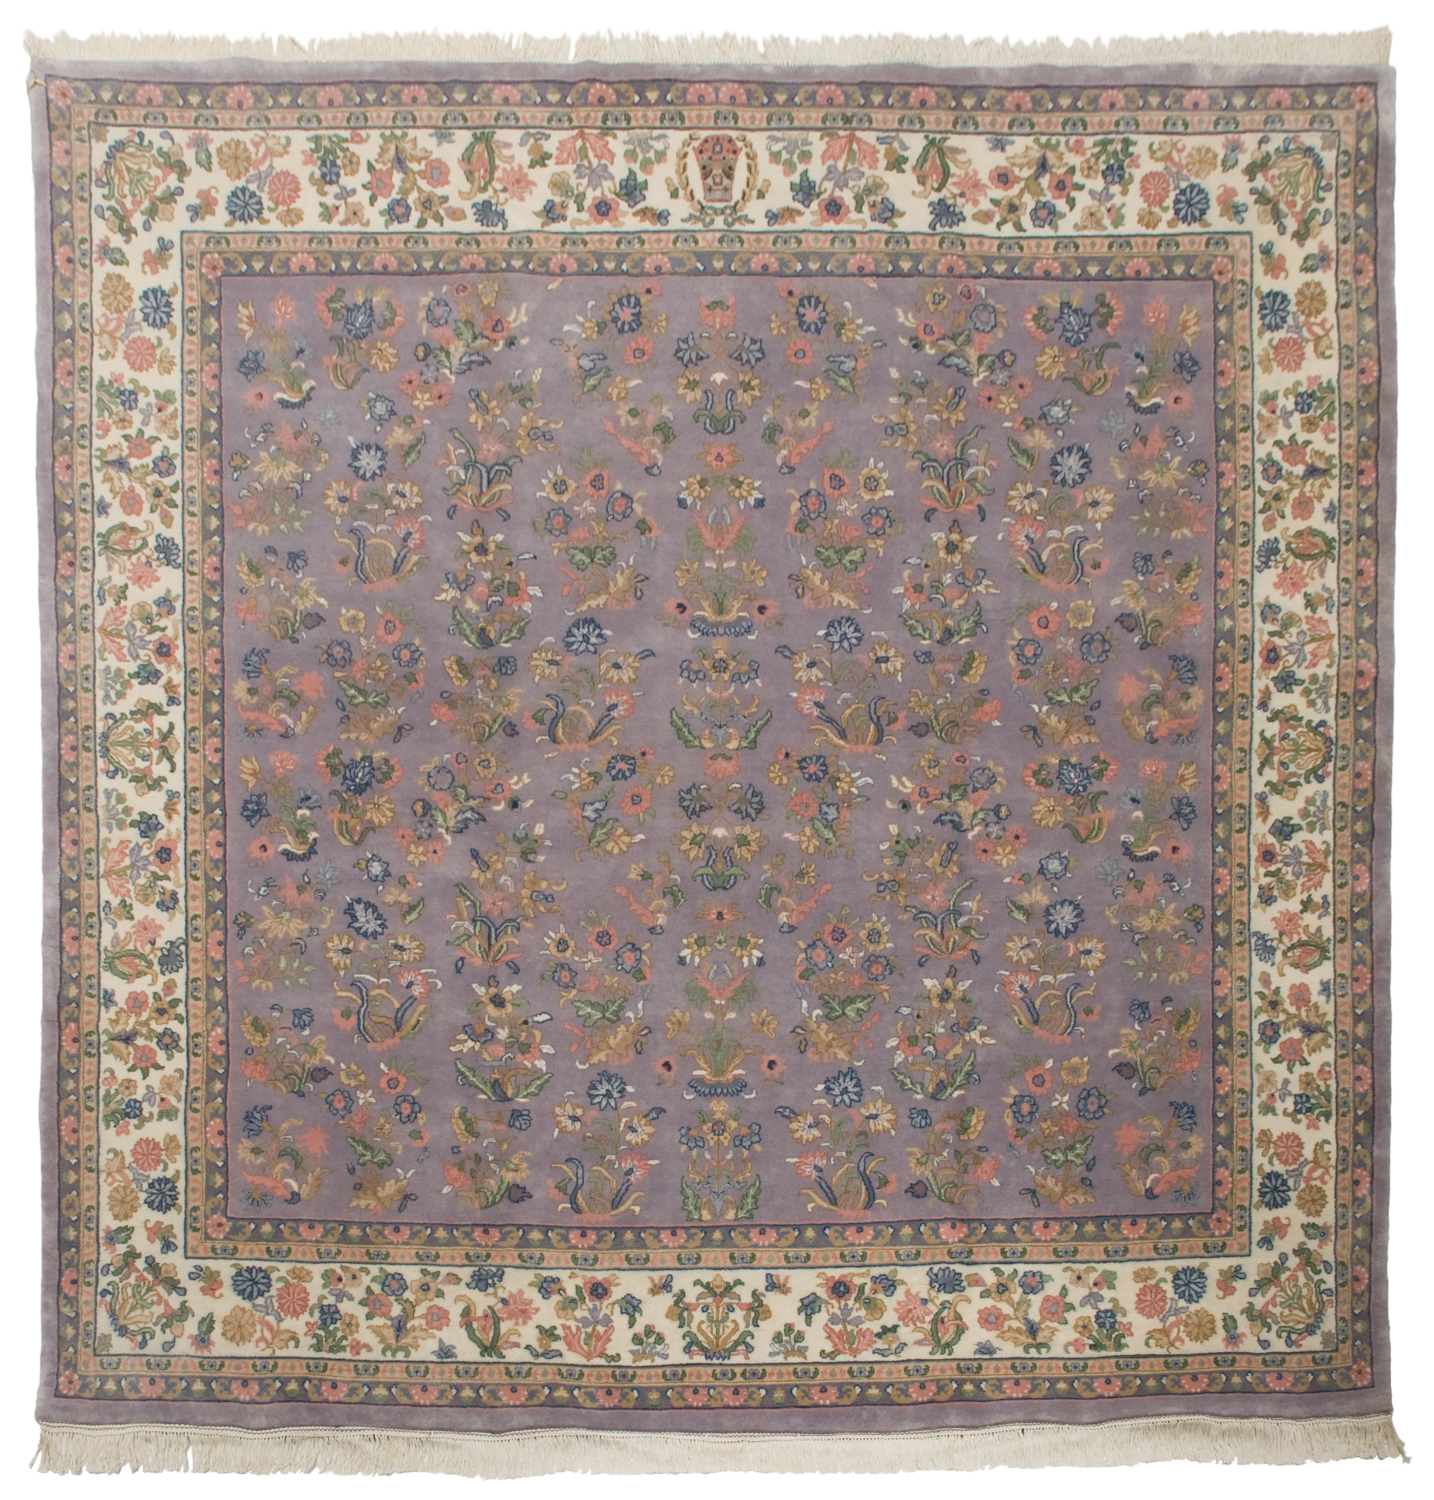 10 Sarouk Design Square Rug